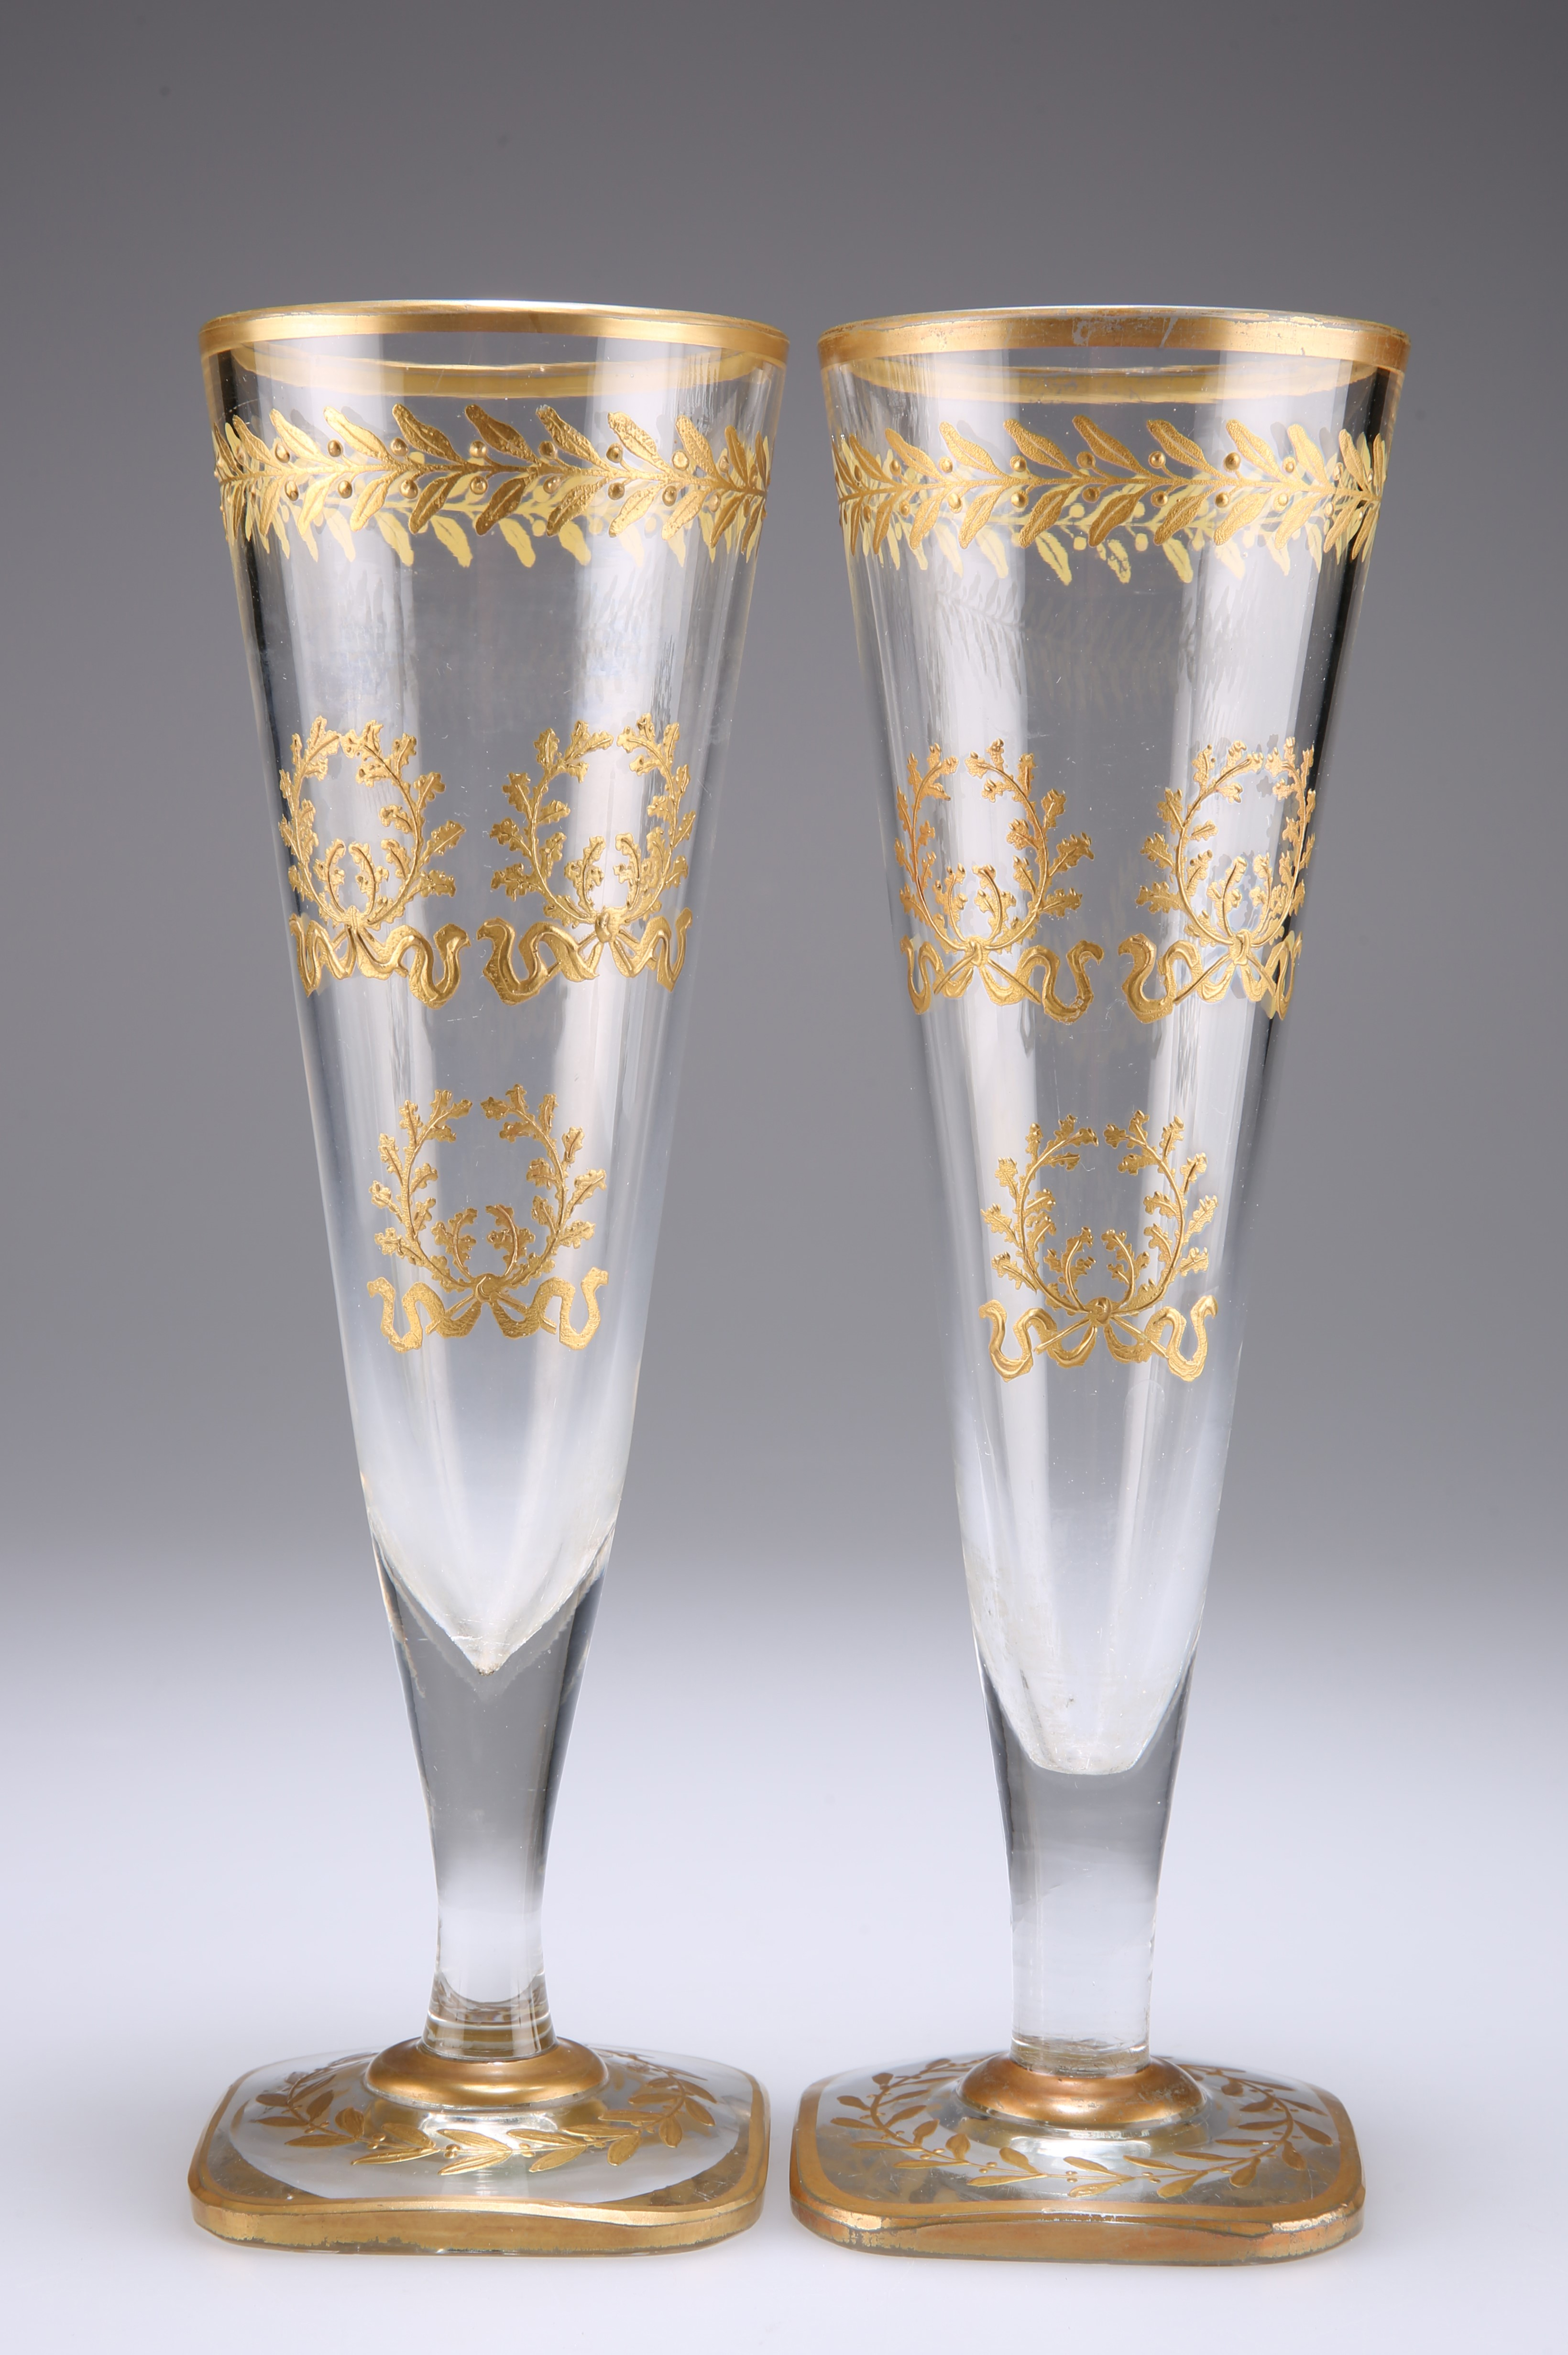 A PAIR OF VERY LARGE BACCARAT FLUTED WINE GLASSES